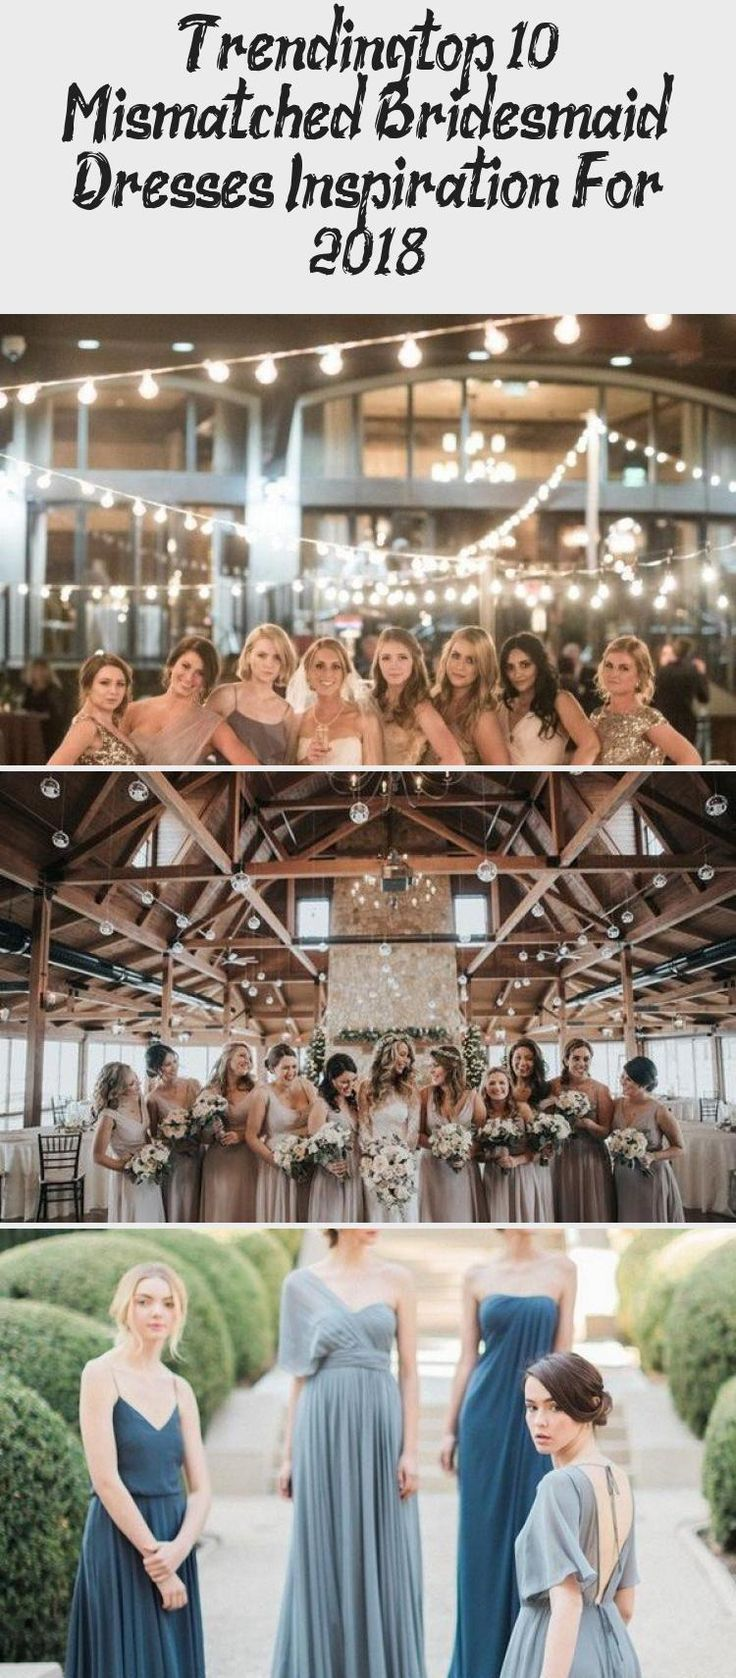 I like doing different color dresses and playing with the greys, blues, and purples. I think the different color greys is really pretty. #YellowBridesmaidDresses #DavidsBridalBridesmaidDresses #WhiteBridesmaidDresses #BridesmaidDressesMismatched #BridesmaidDressesFall